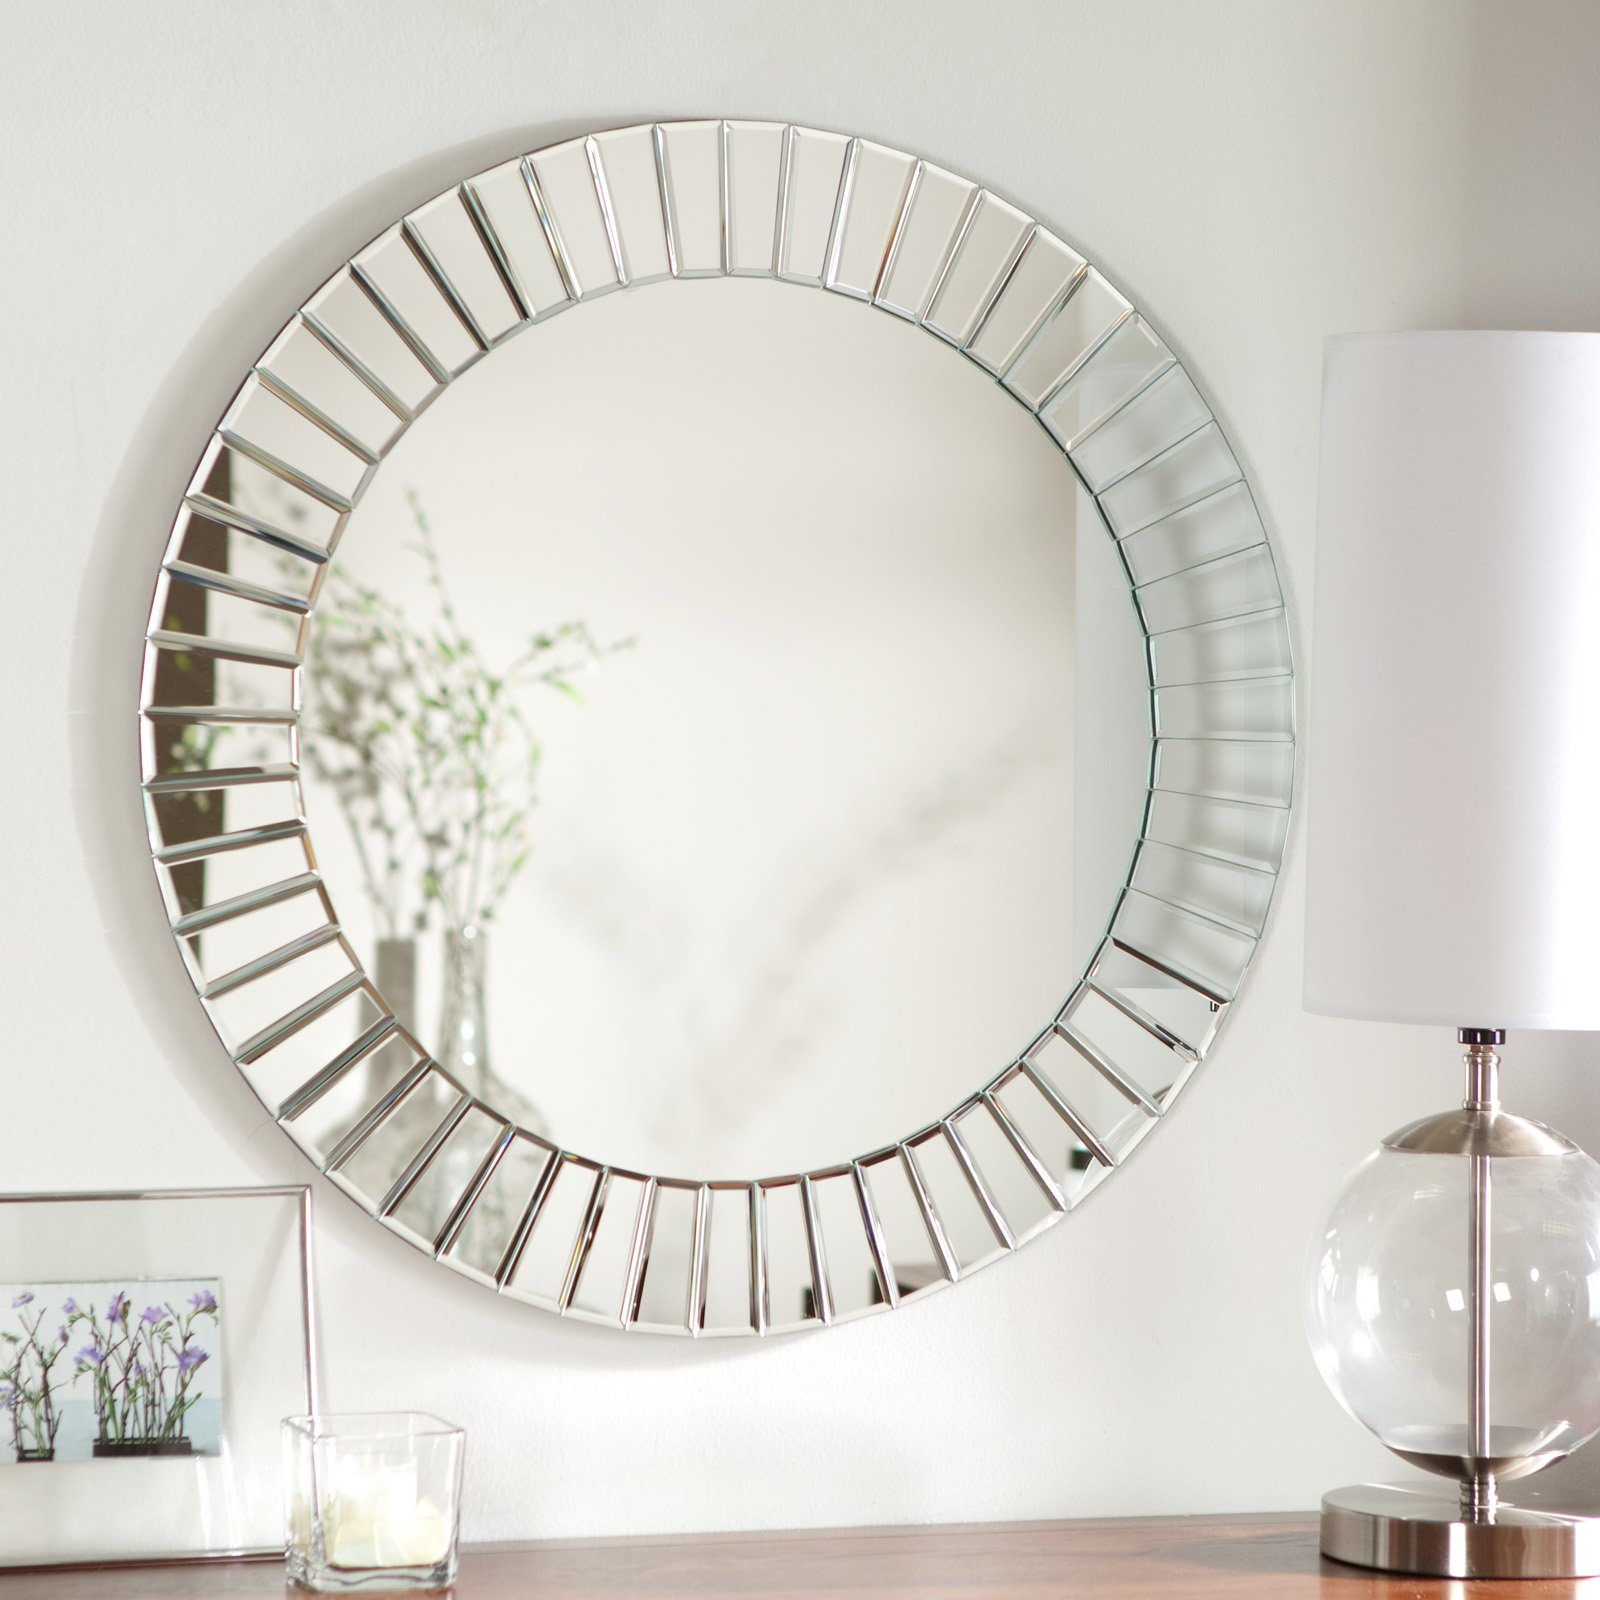 Frameless Round Wall Mirrors Inside Most Popular Remarkable Decorative Beveled Wall Mirrors Frame Large Three (View 9 of 20)